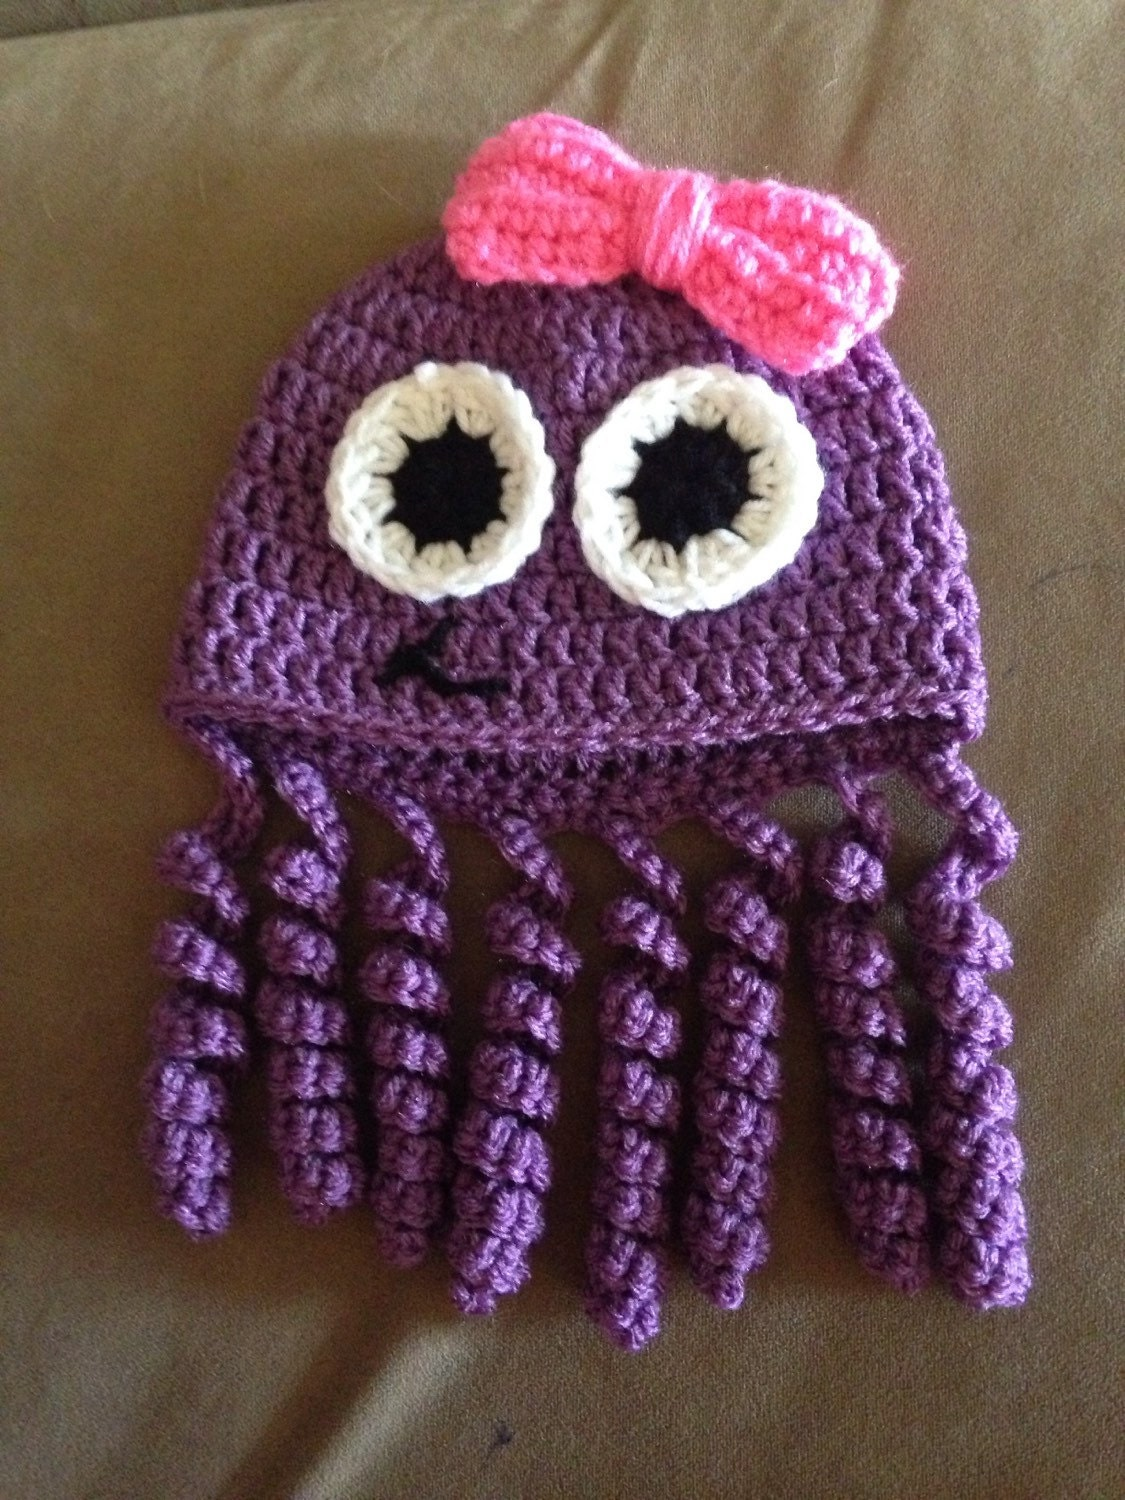 Crochet Octopus Hat : Crochet octopus hat size 0-6 months by TwistedYarnies on Etsy